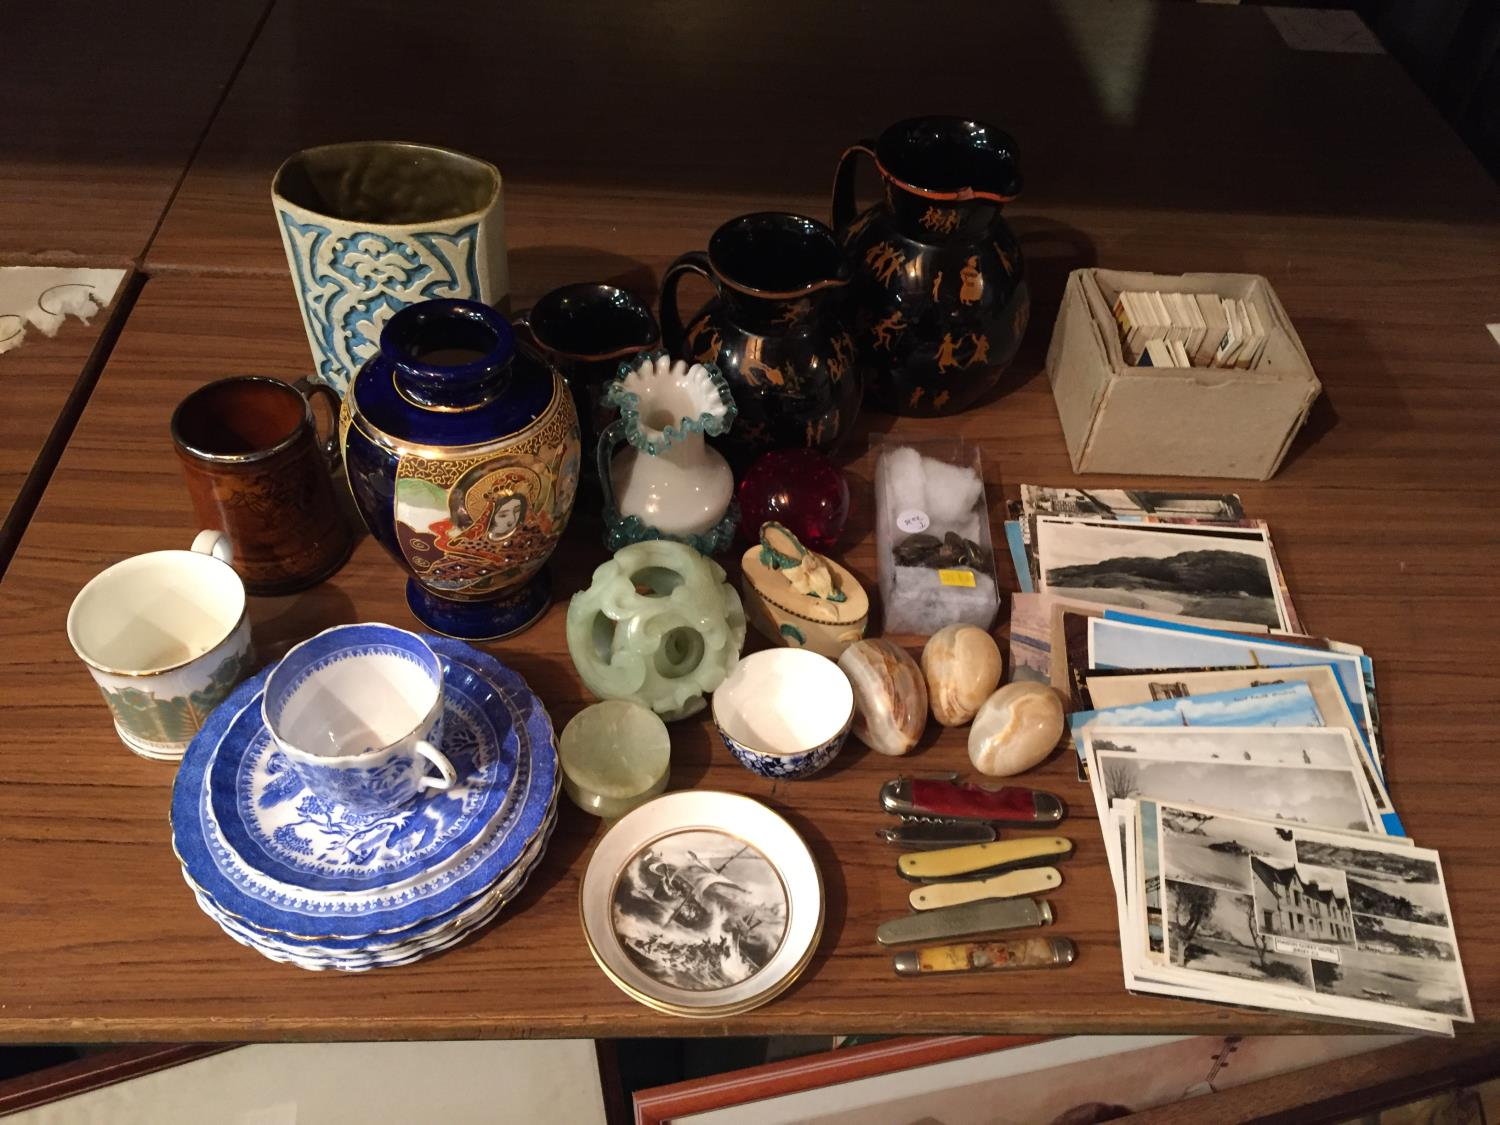 A COLLECTION OF CERAMICS TO INCLUDE BESWICK, WORCESTER PIN TRAYS CIGARETTE CARDS, POSTCARDS ETC - Image 2 of 10